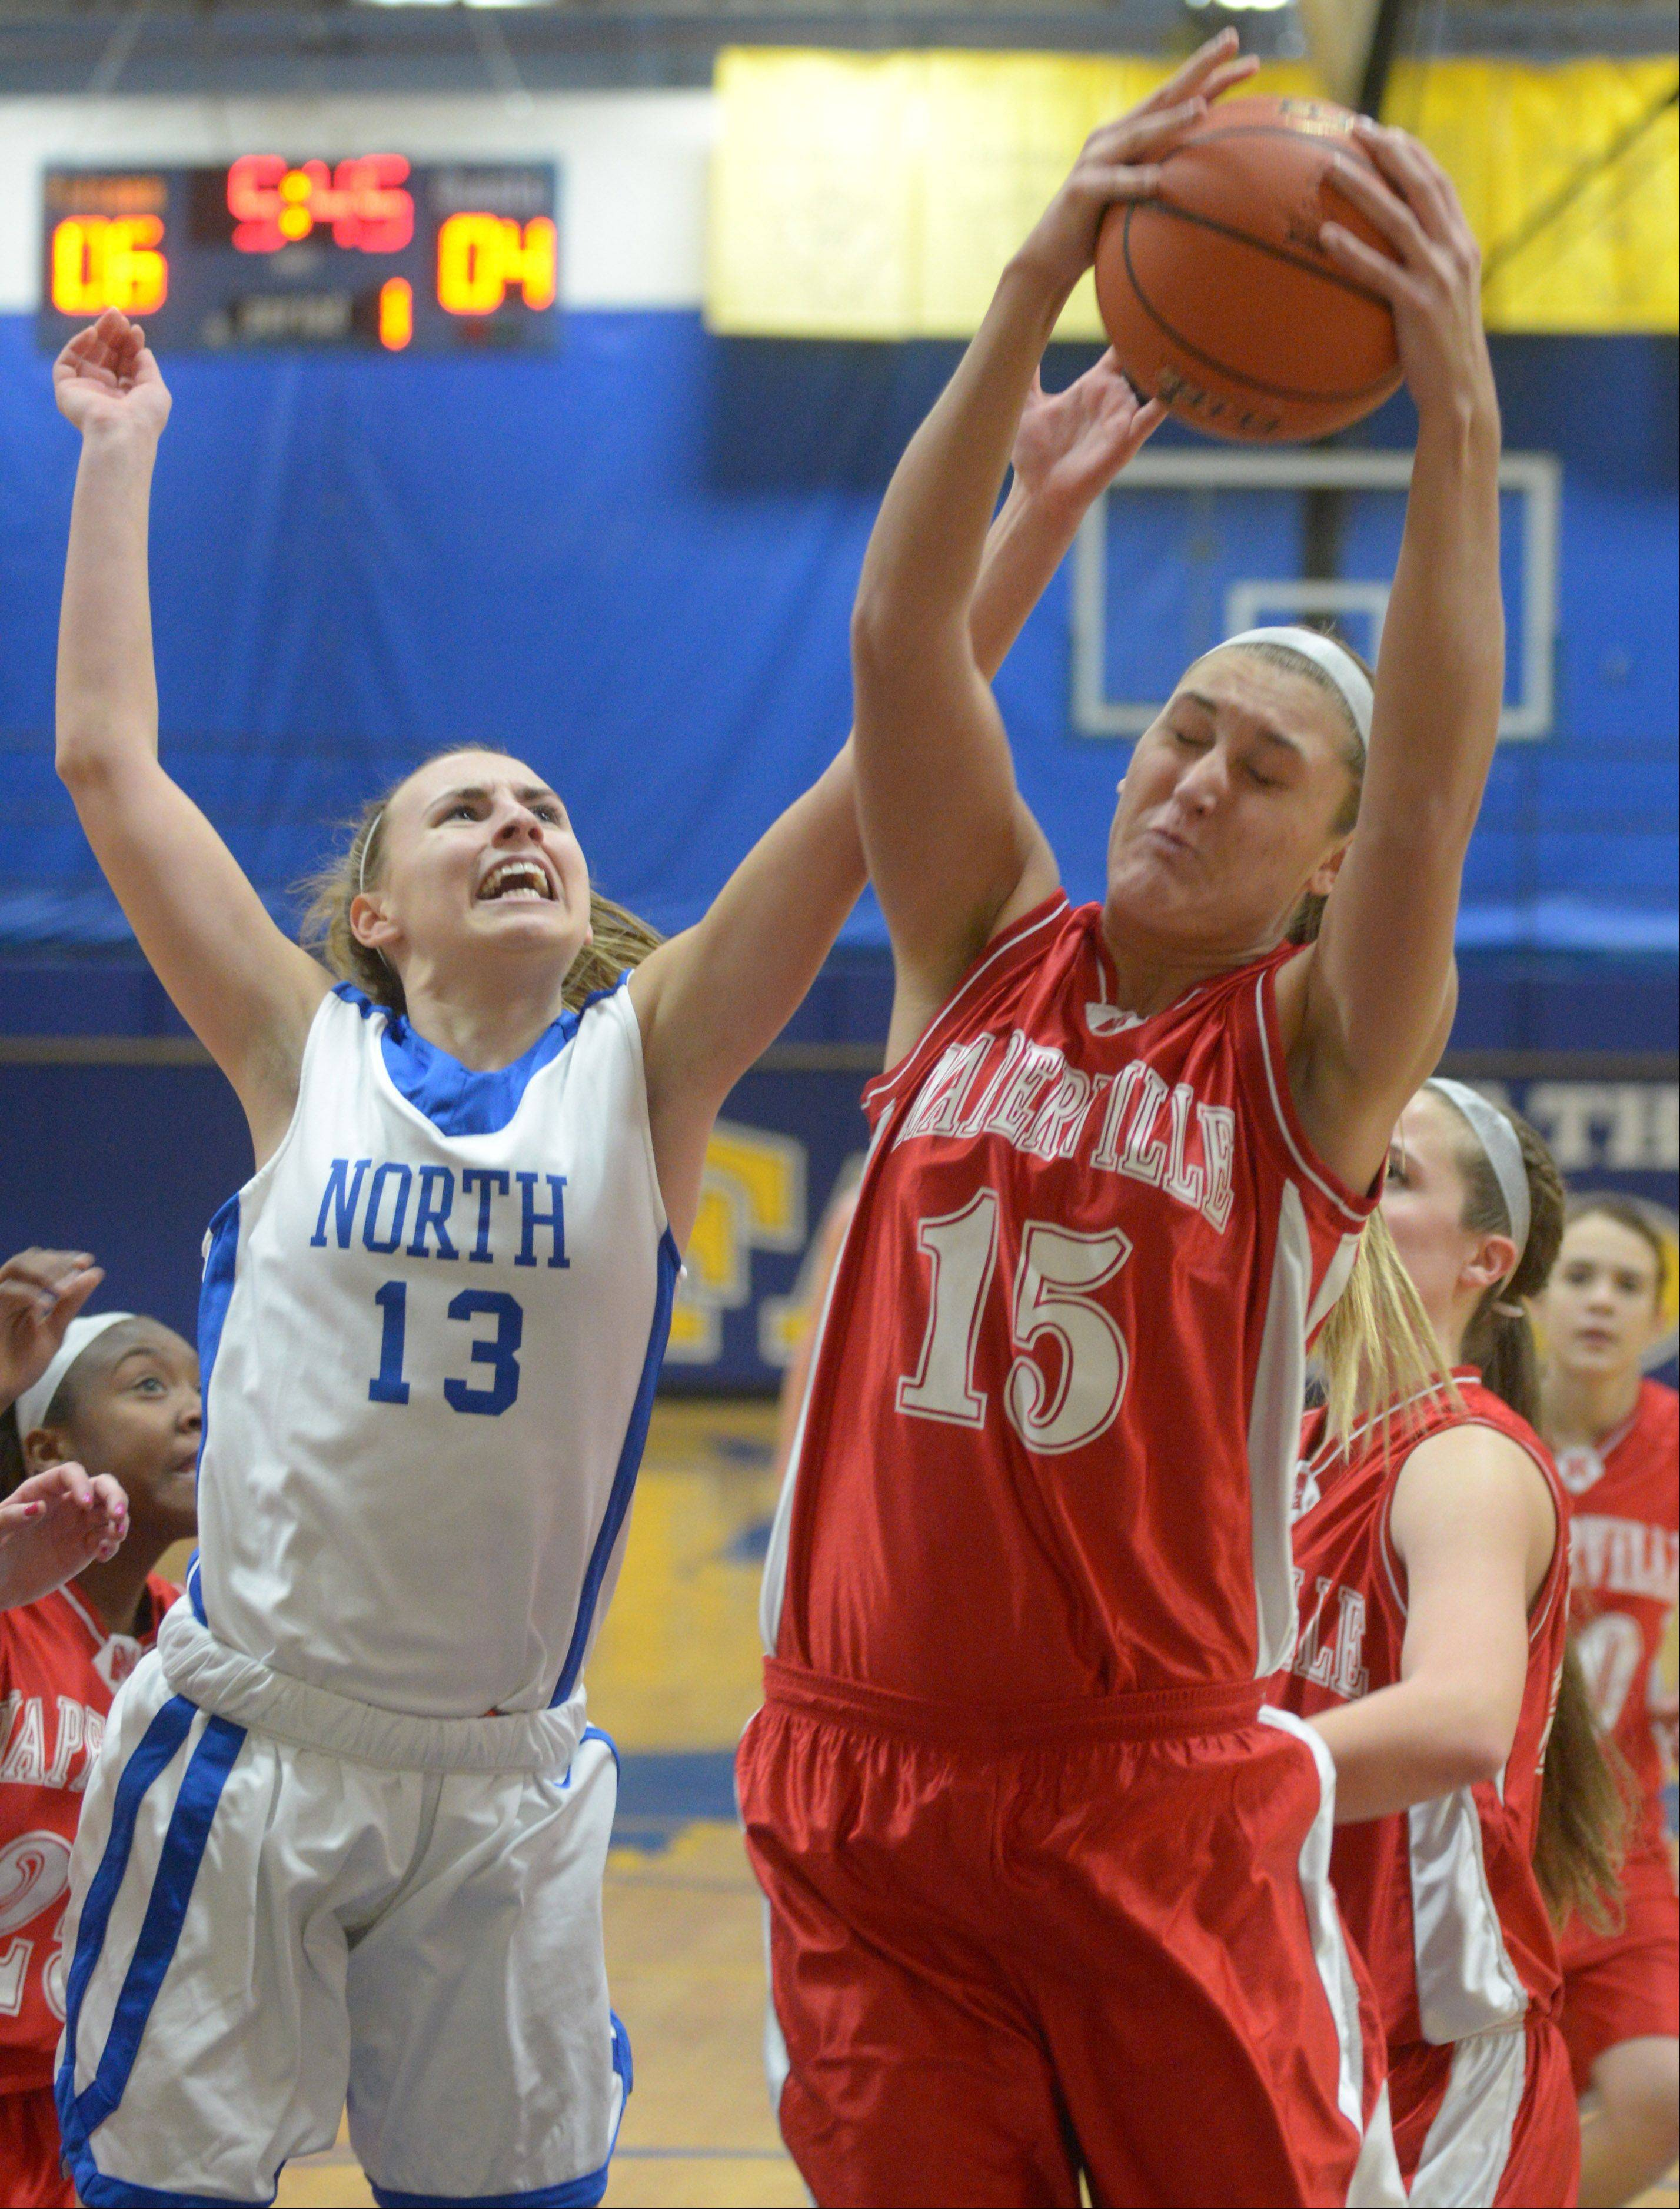 Brooke Schanowski of Wheaton North tries to block Victoria Trowbridge of Naperville Central during the Naperville Central at Wheaton North Girls basketball game Thursday.